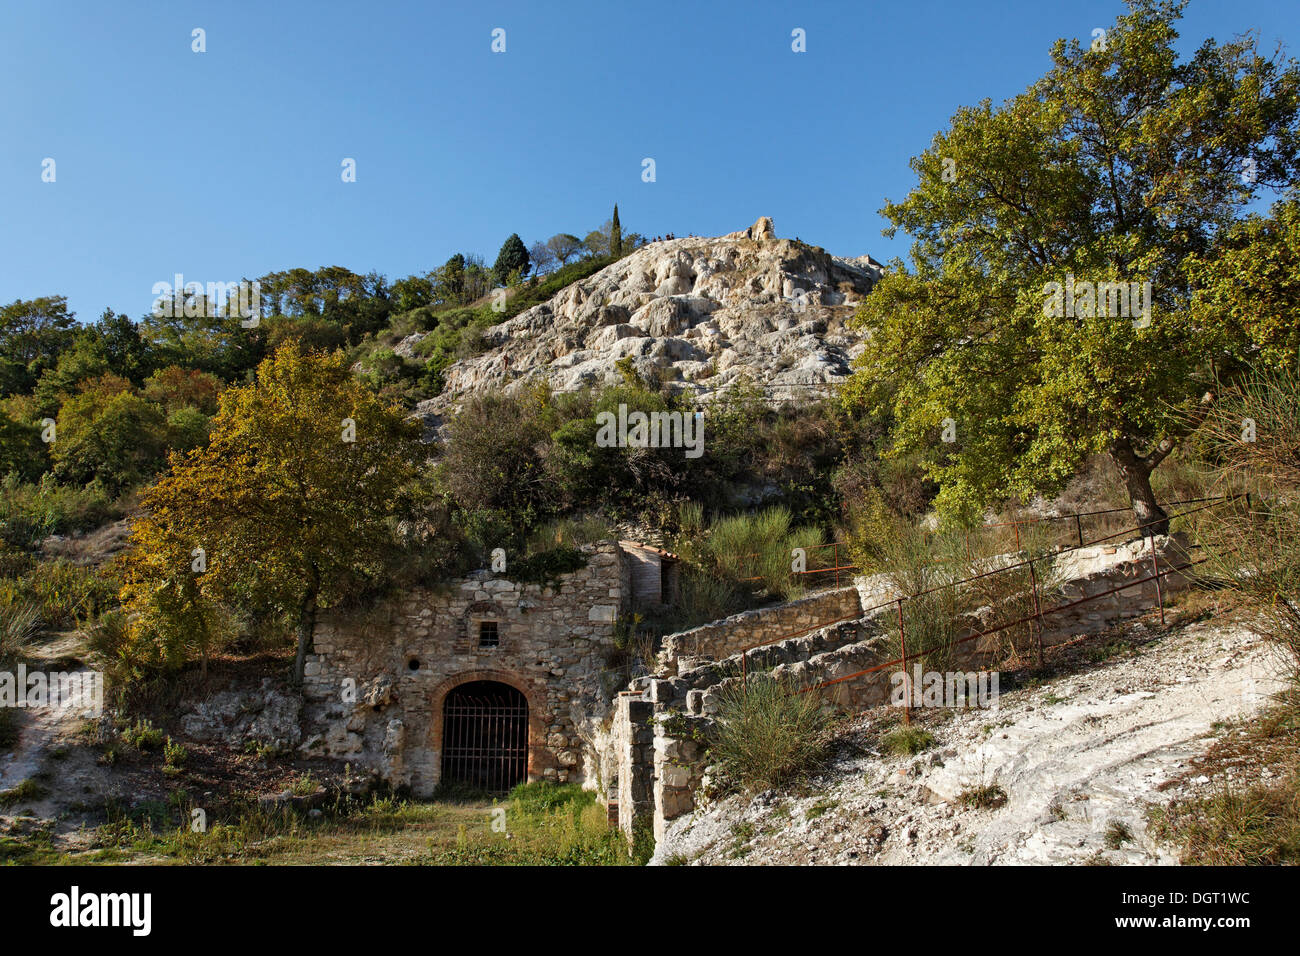 Orcia Valley Immagini & Orcia Valley Fotos Stock - Alamy